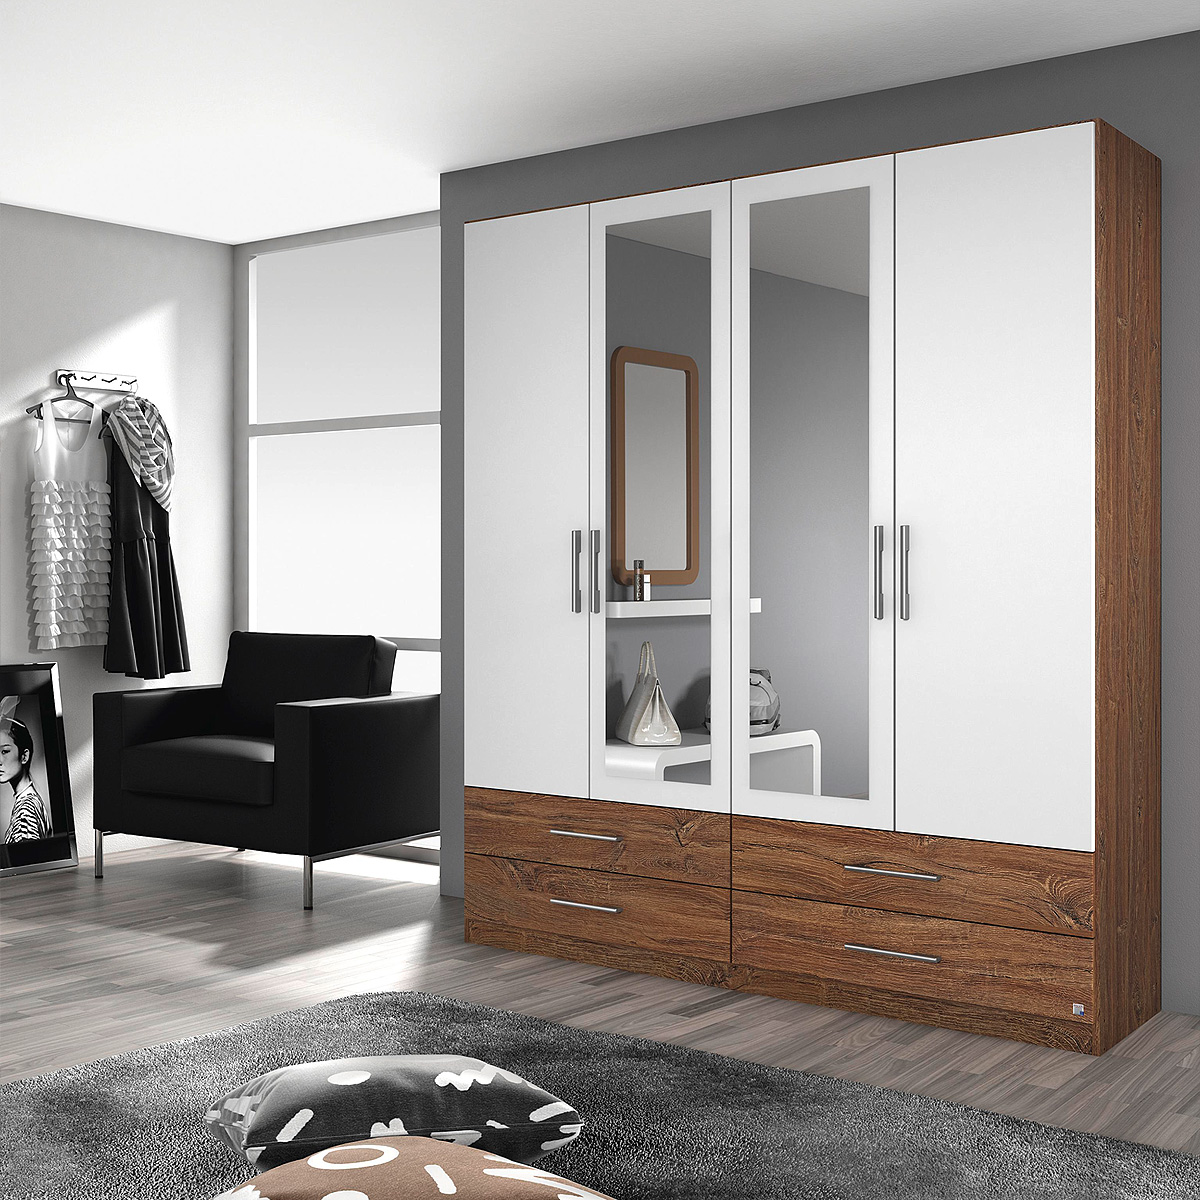 kleiderschrank hersbruck schrank in wei grau metallic oder eiche stirling 181 ebay. Black Bedroom Furniture Sets. Home Design Ideas